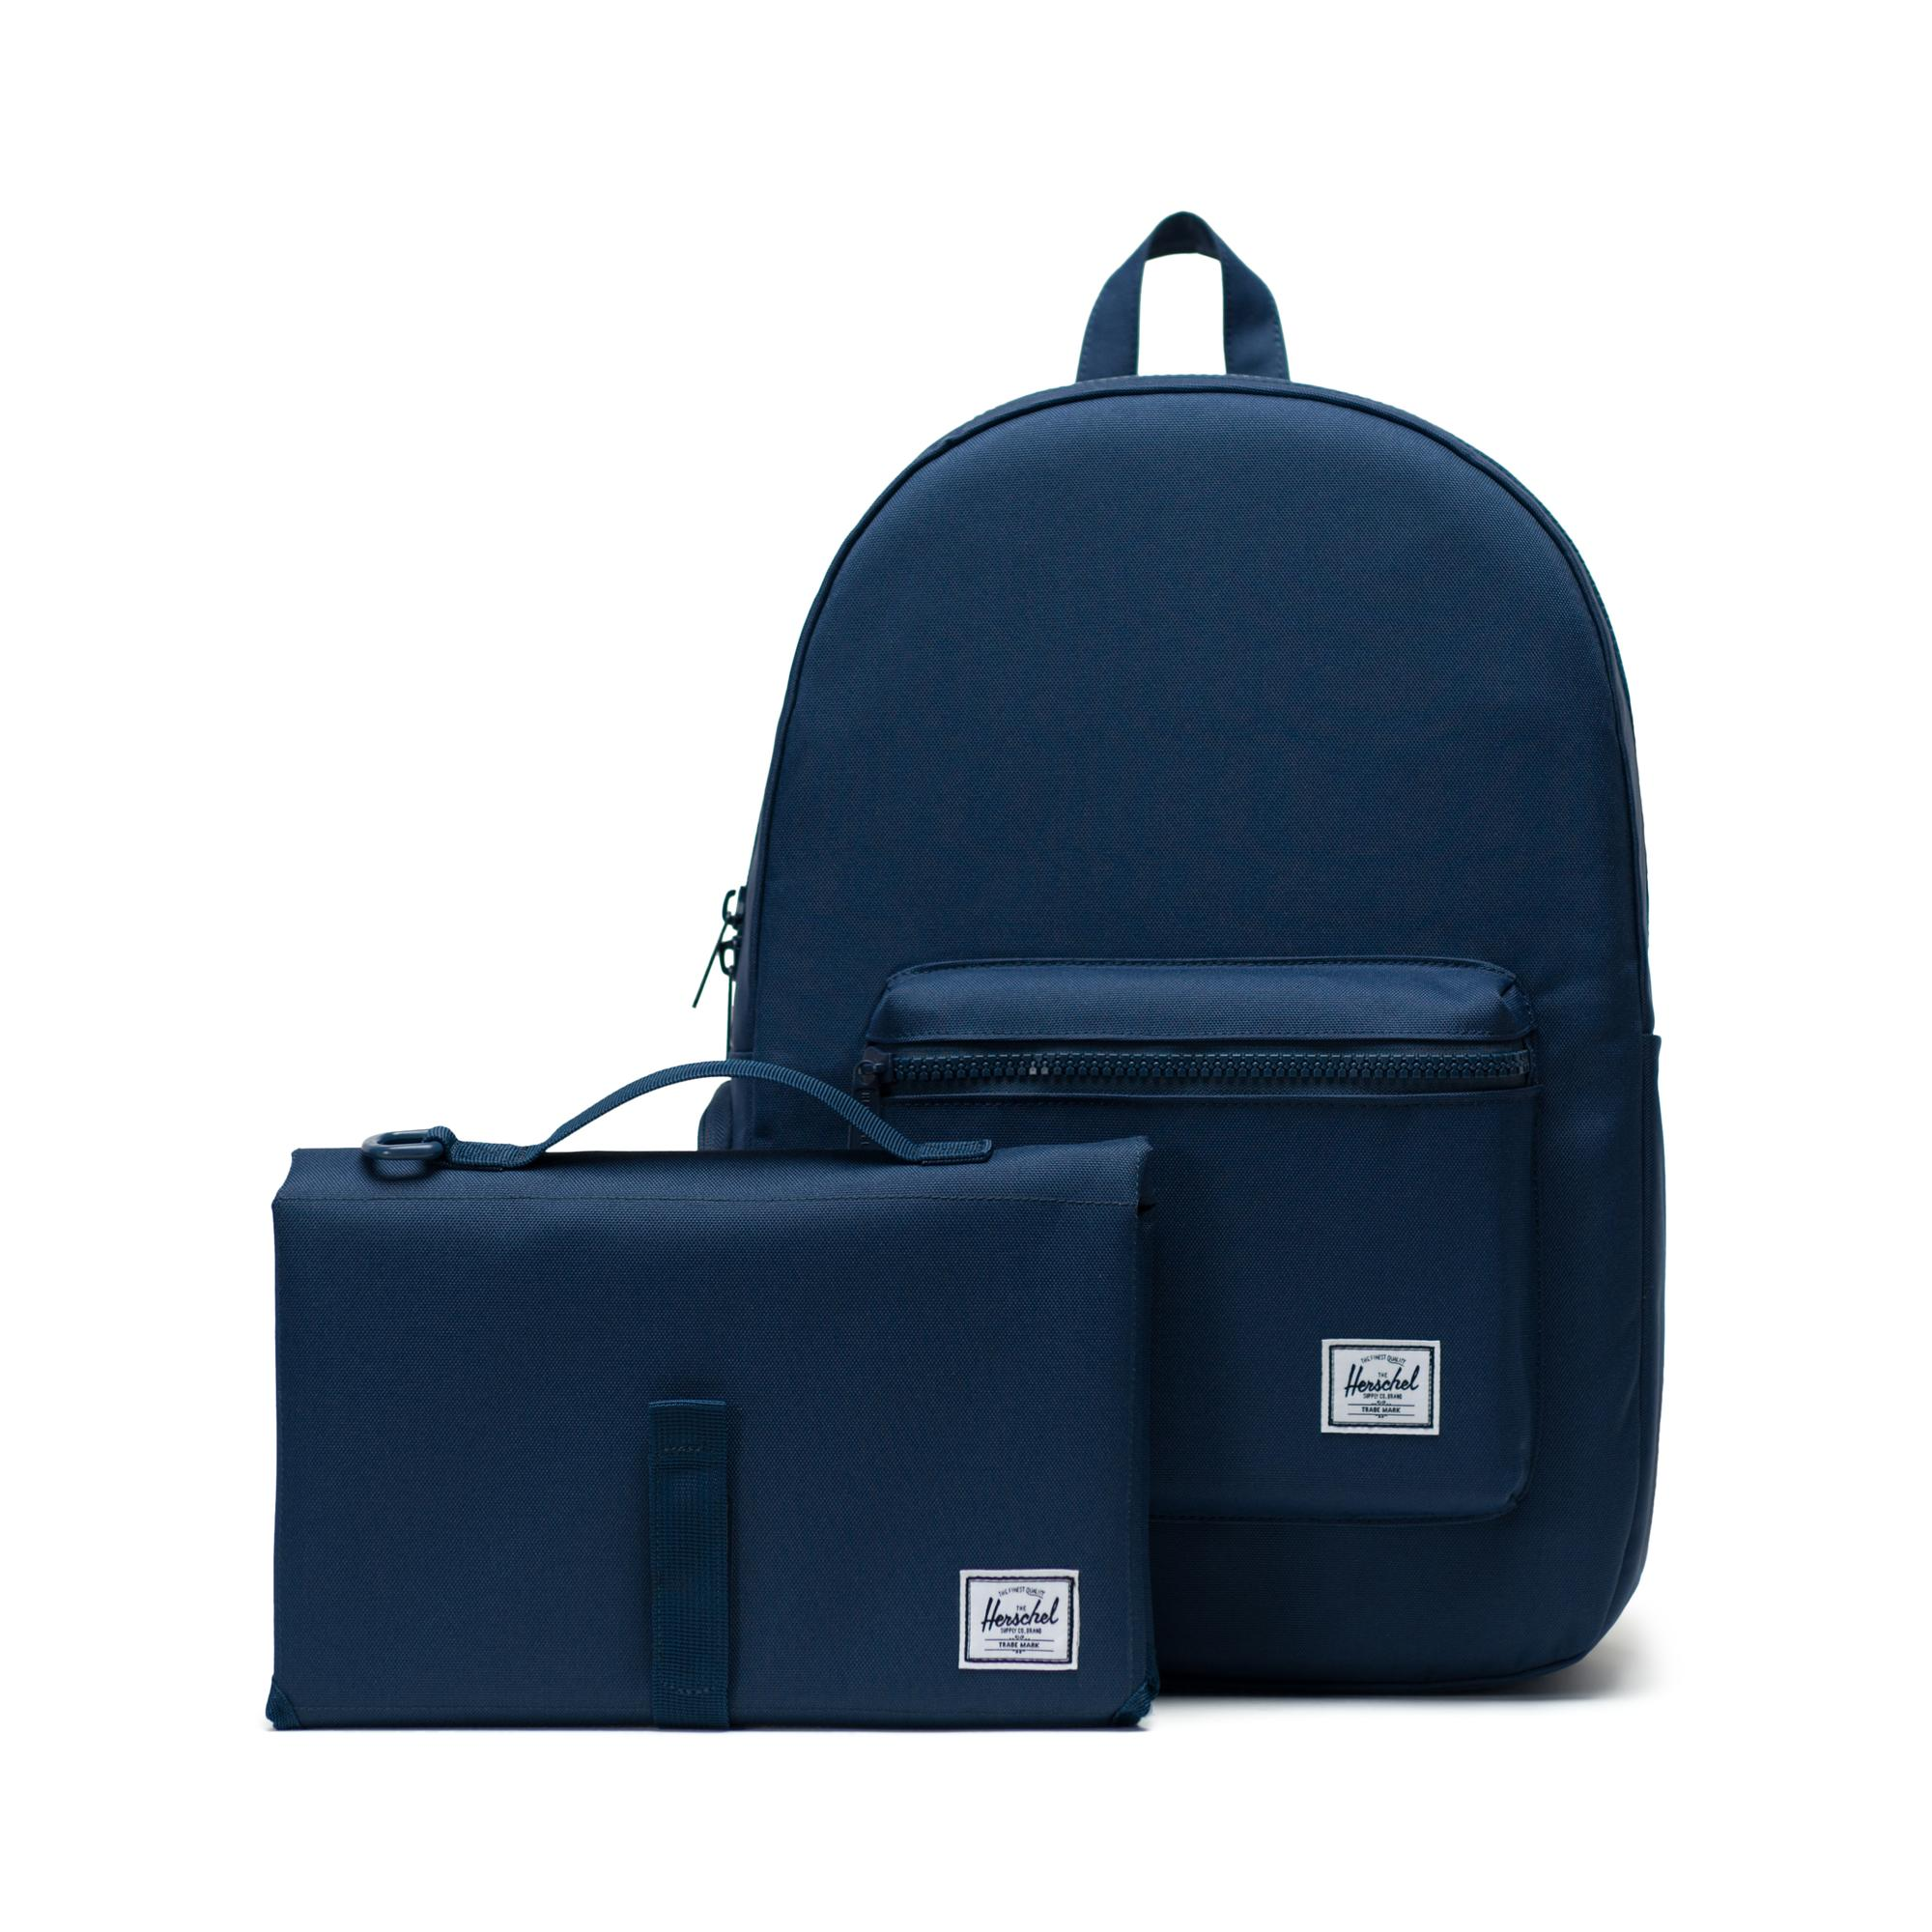 Settlement Backpack Sprout Herschel Supply Company